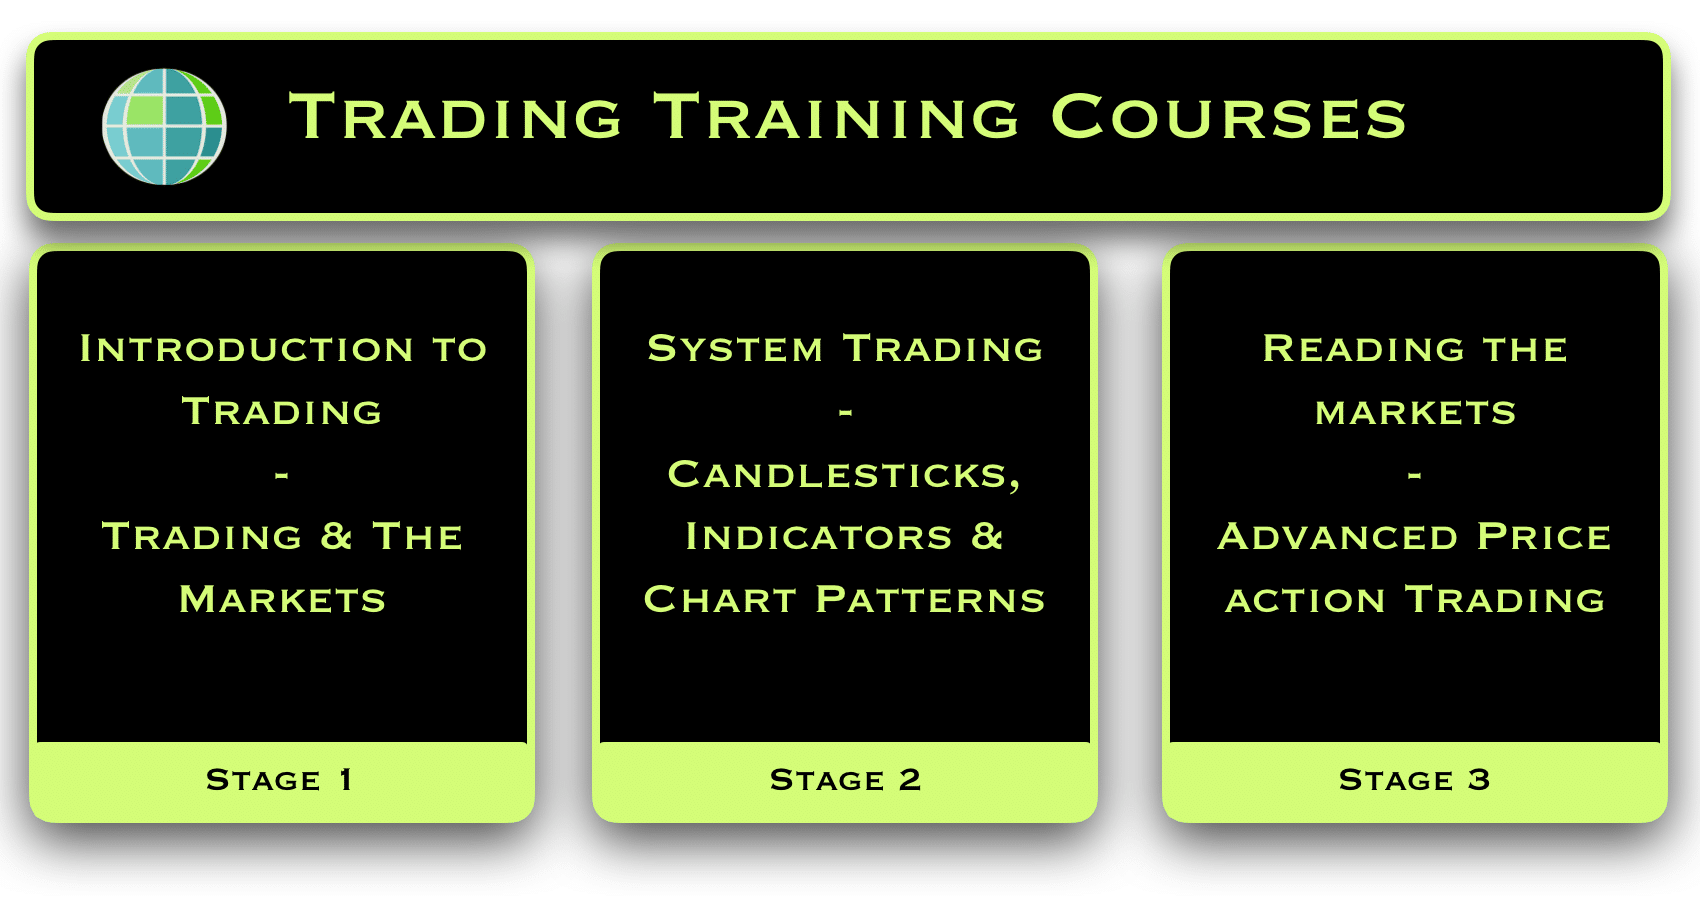 Trading as a business options video course